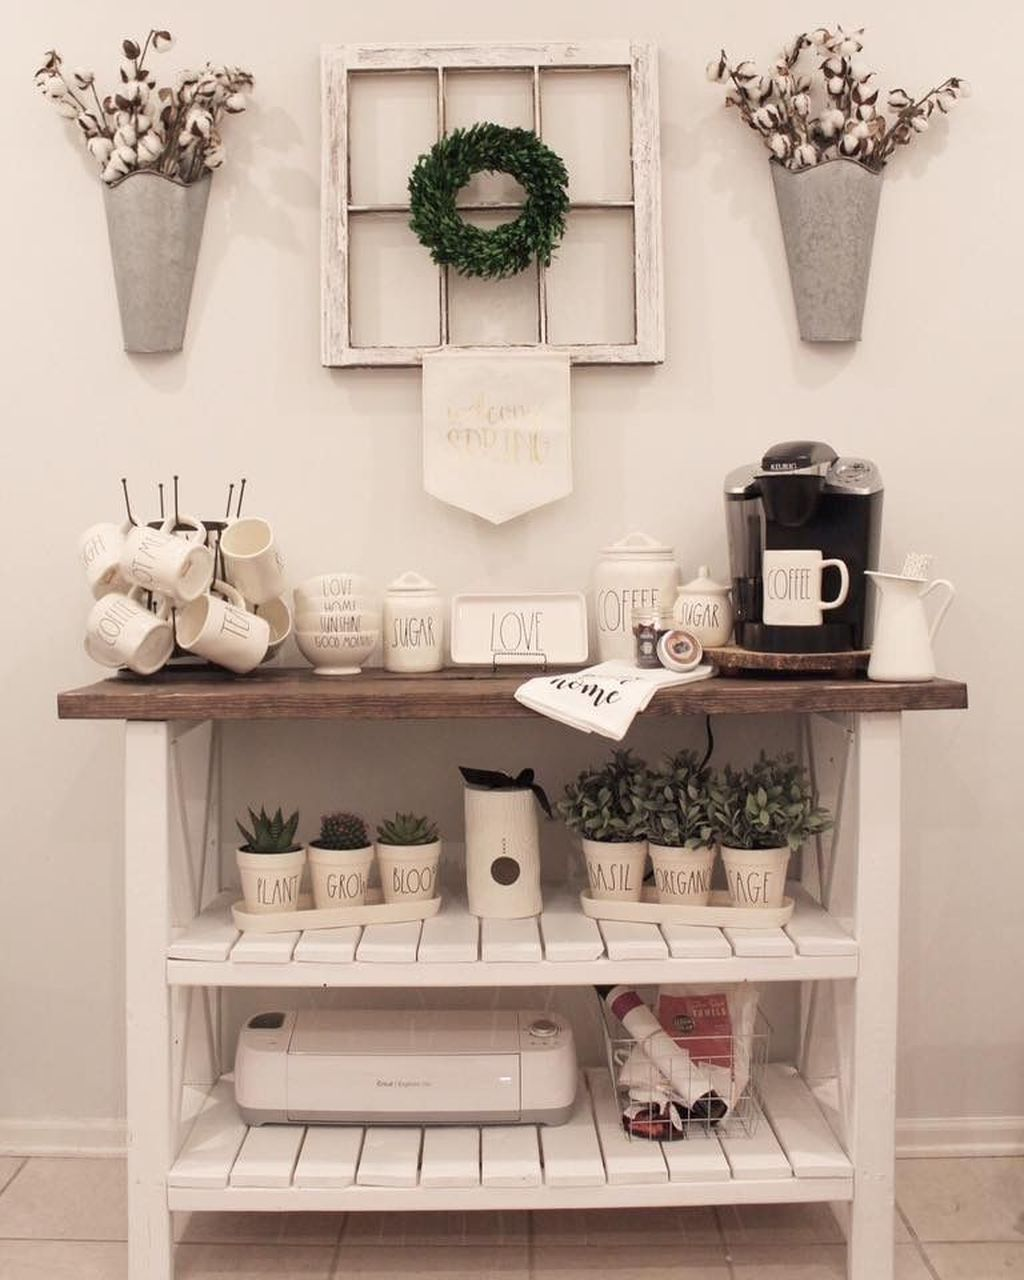 Home Coffee Bar Design Ideas: 30+ Latest Diy Coffee Station Ideas In Your Kitchen